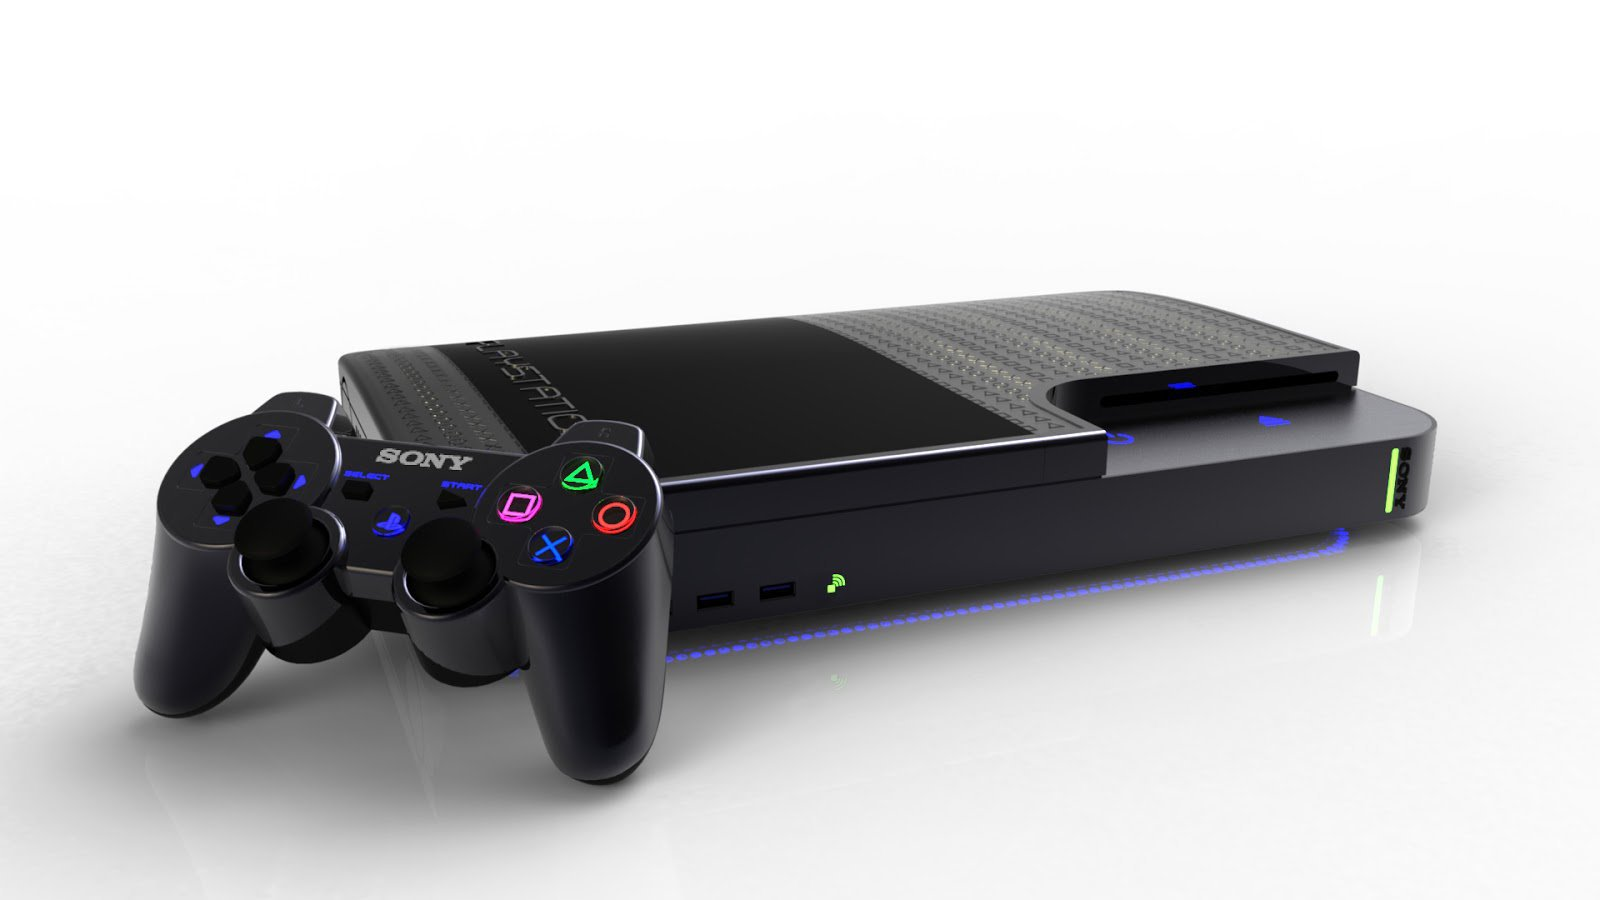 Sony Announces PlayStation 4, 8-Core 32-Bit Proc, 8GB GDDR5 Memory and Dual Shock 4 Controller